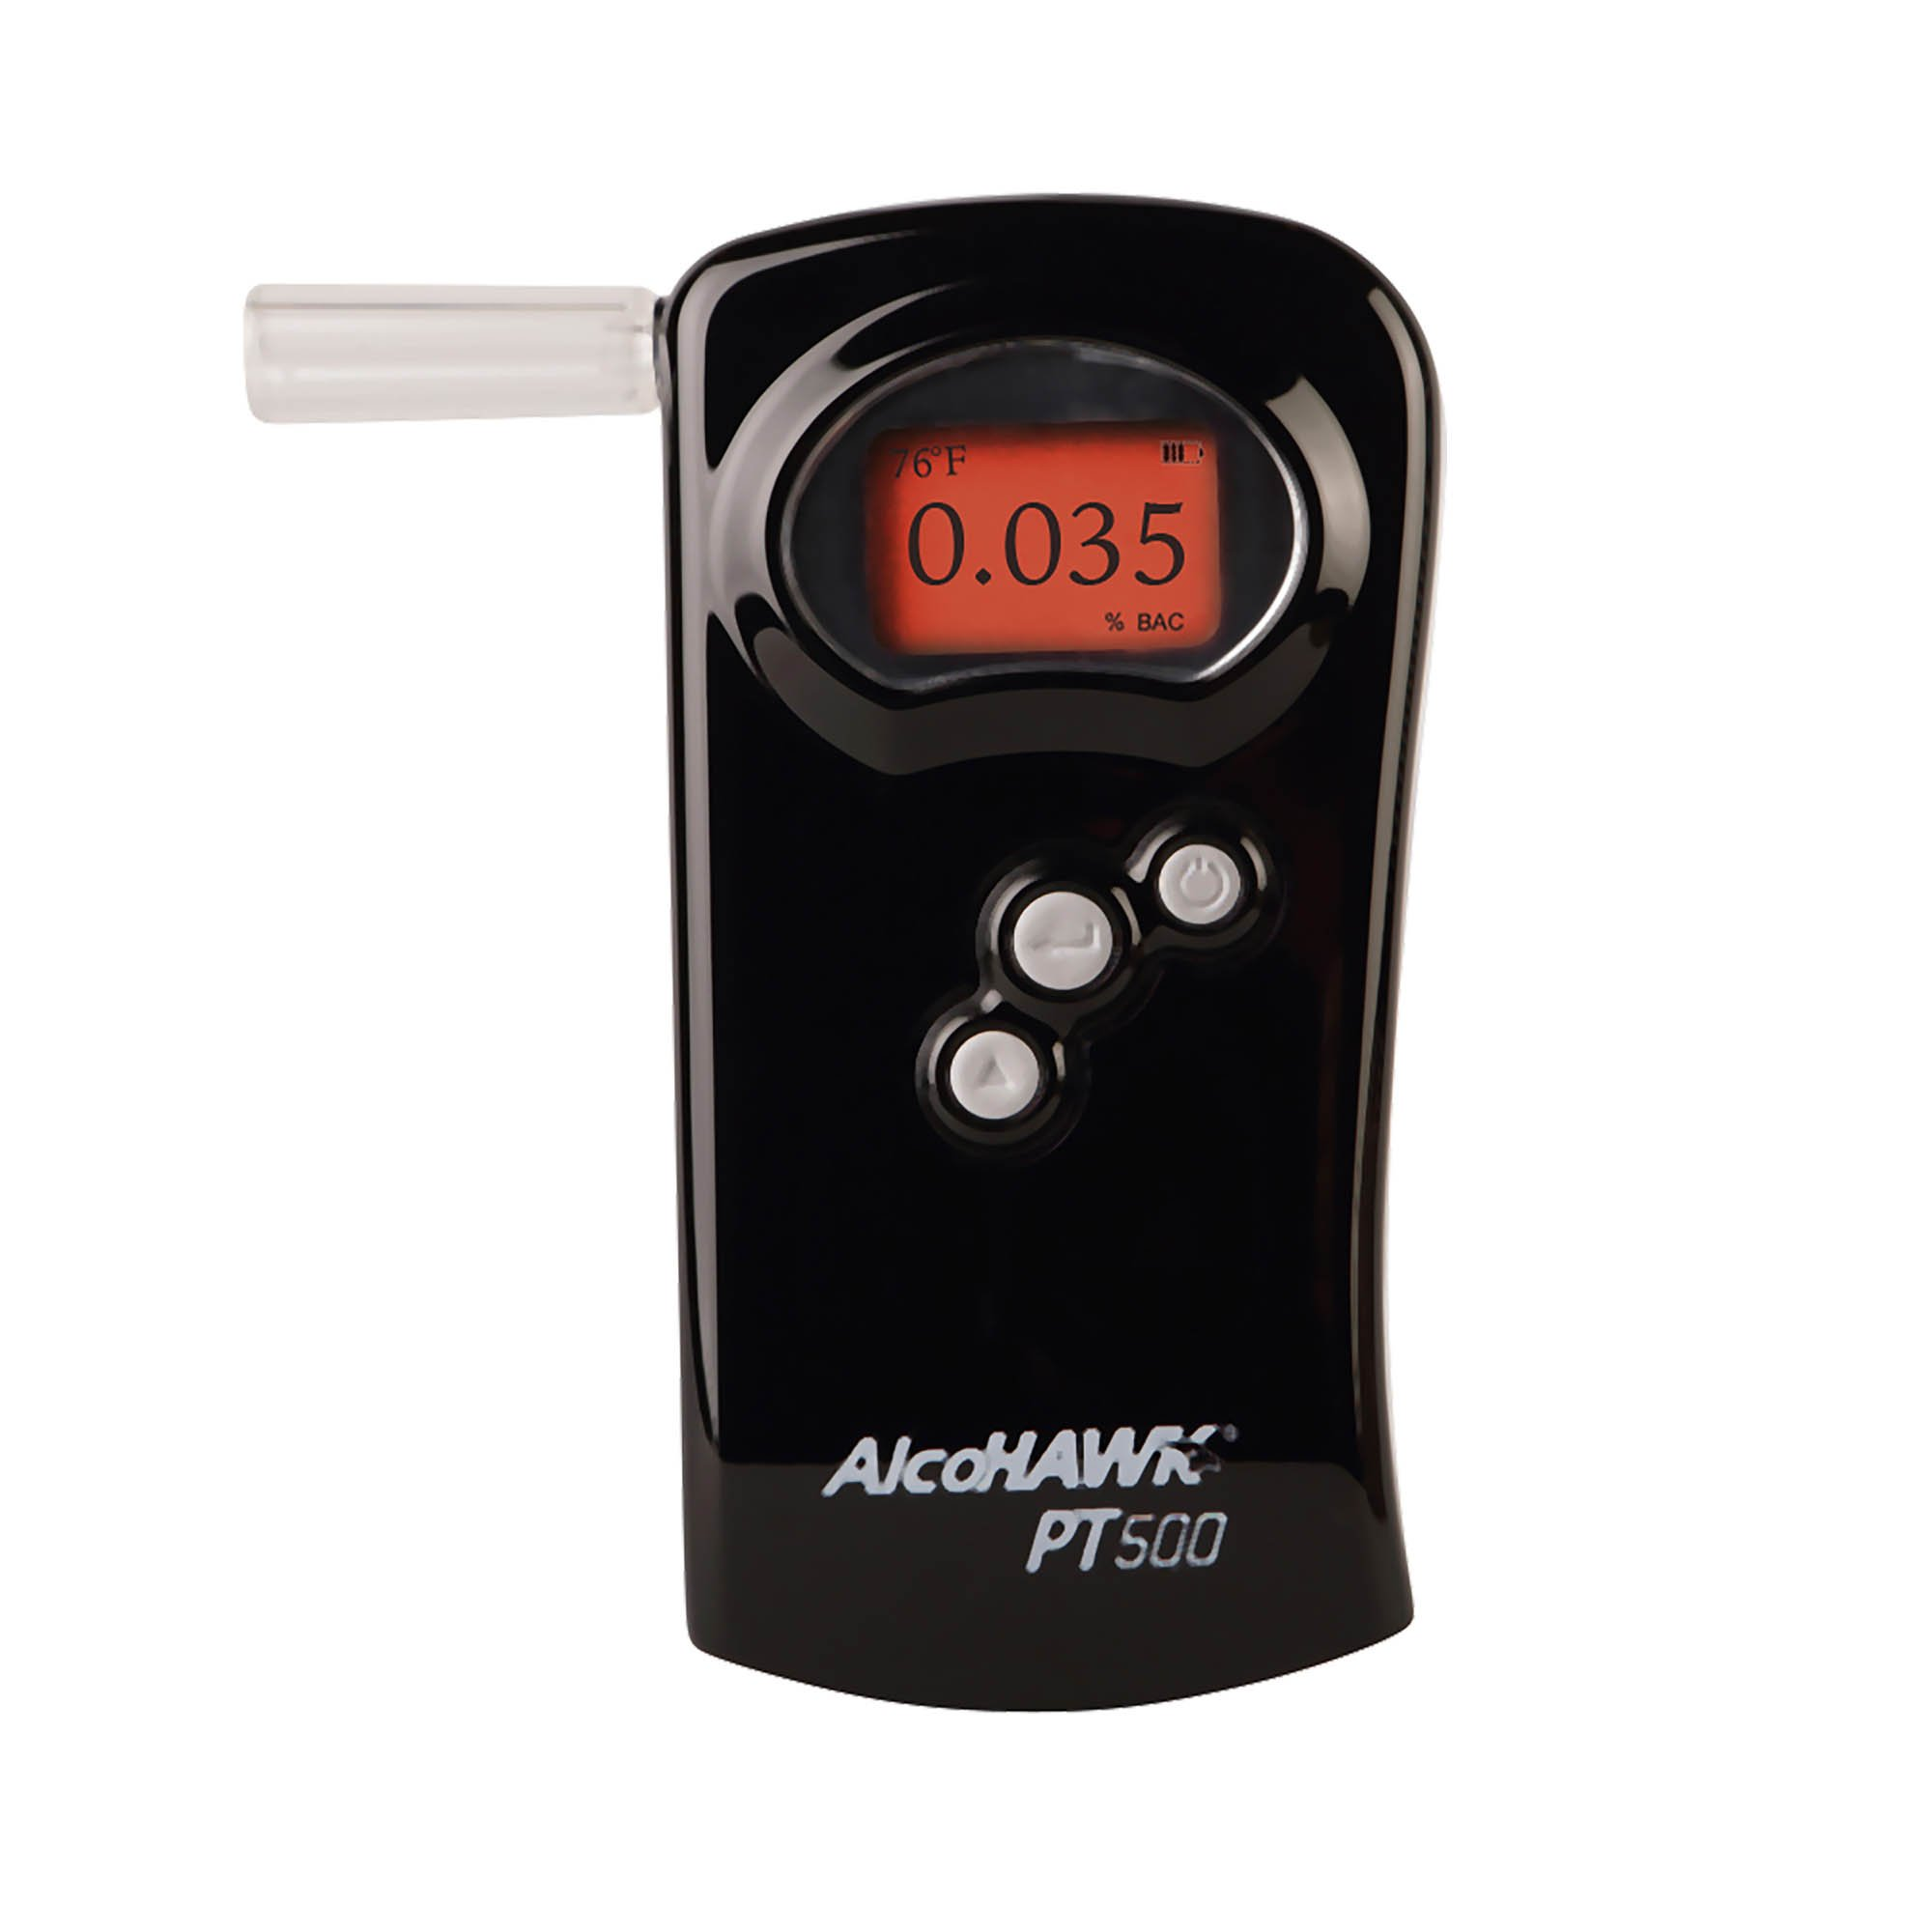 AlcoHAWK PT500 Breathalyzer, Fuel Cell Sensor, Police Grade Professional Breath Alcohol Tester, Portable Personal Use Alcohol Detector Accurate and Fast Results, BAC Tracker with Digital LCD Screen by AlcoHawk